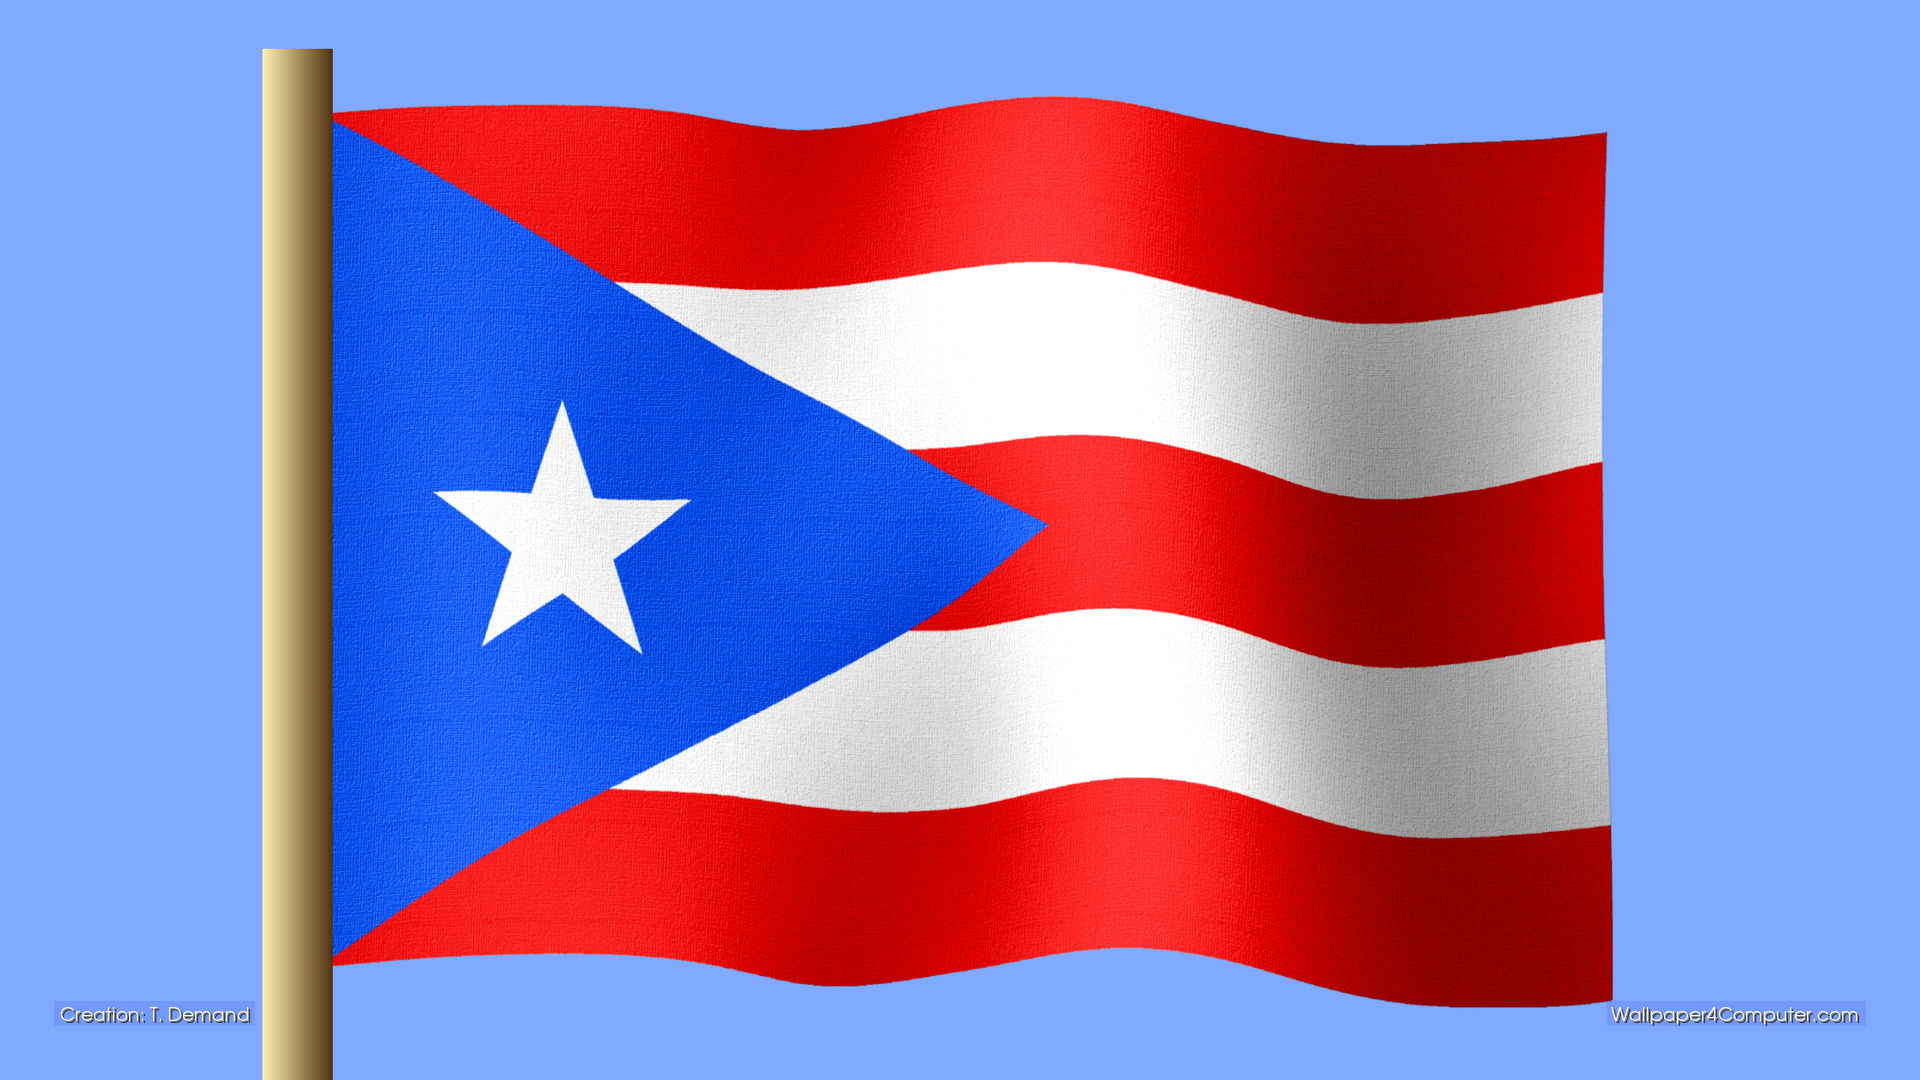 Free Download Puerto Rican Flag Wallpaper Wwwgalleryhipcom The